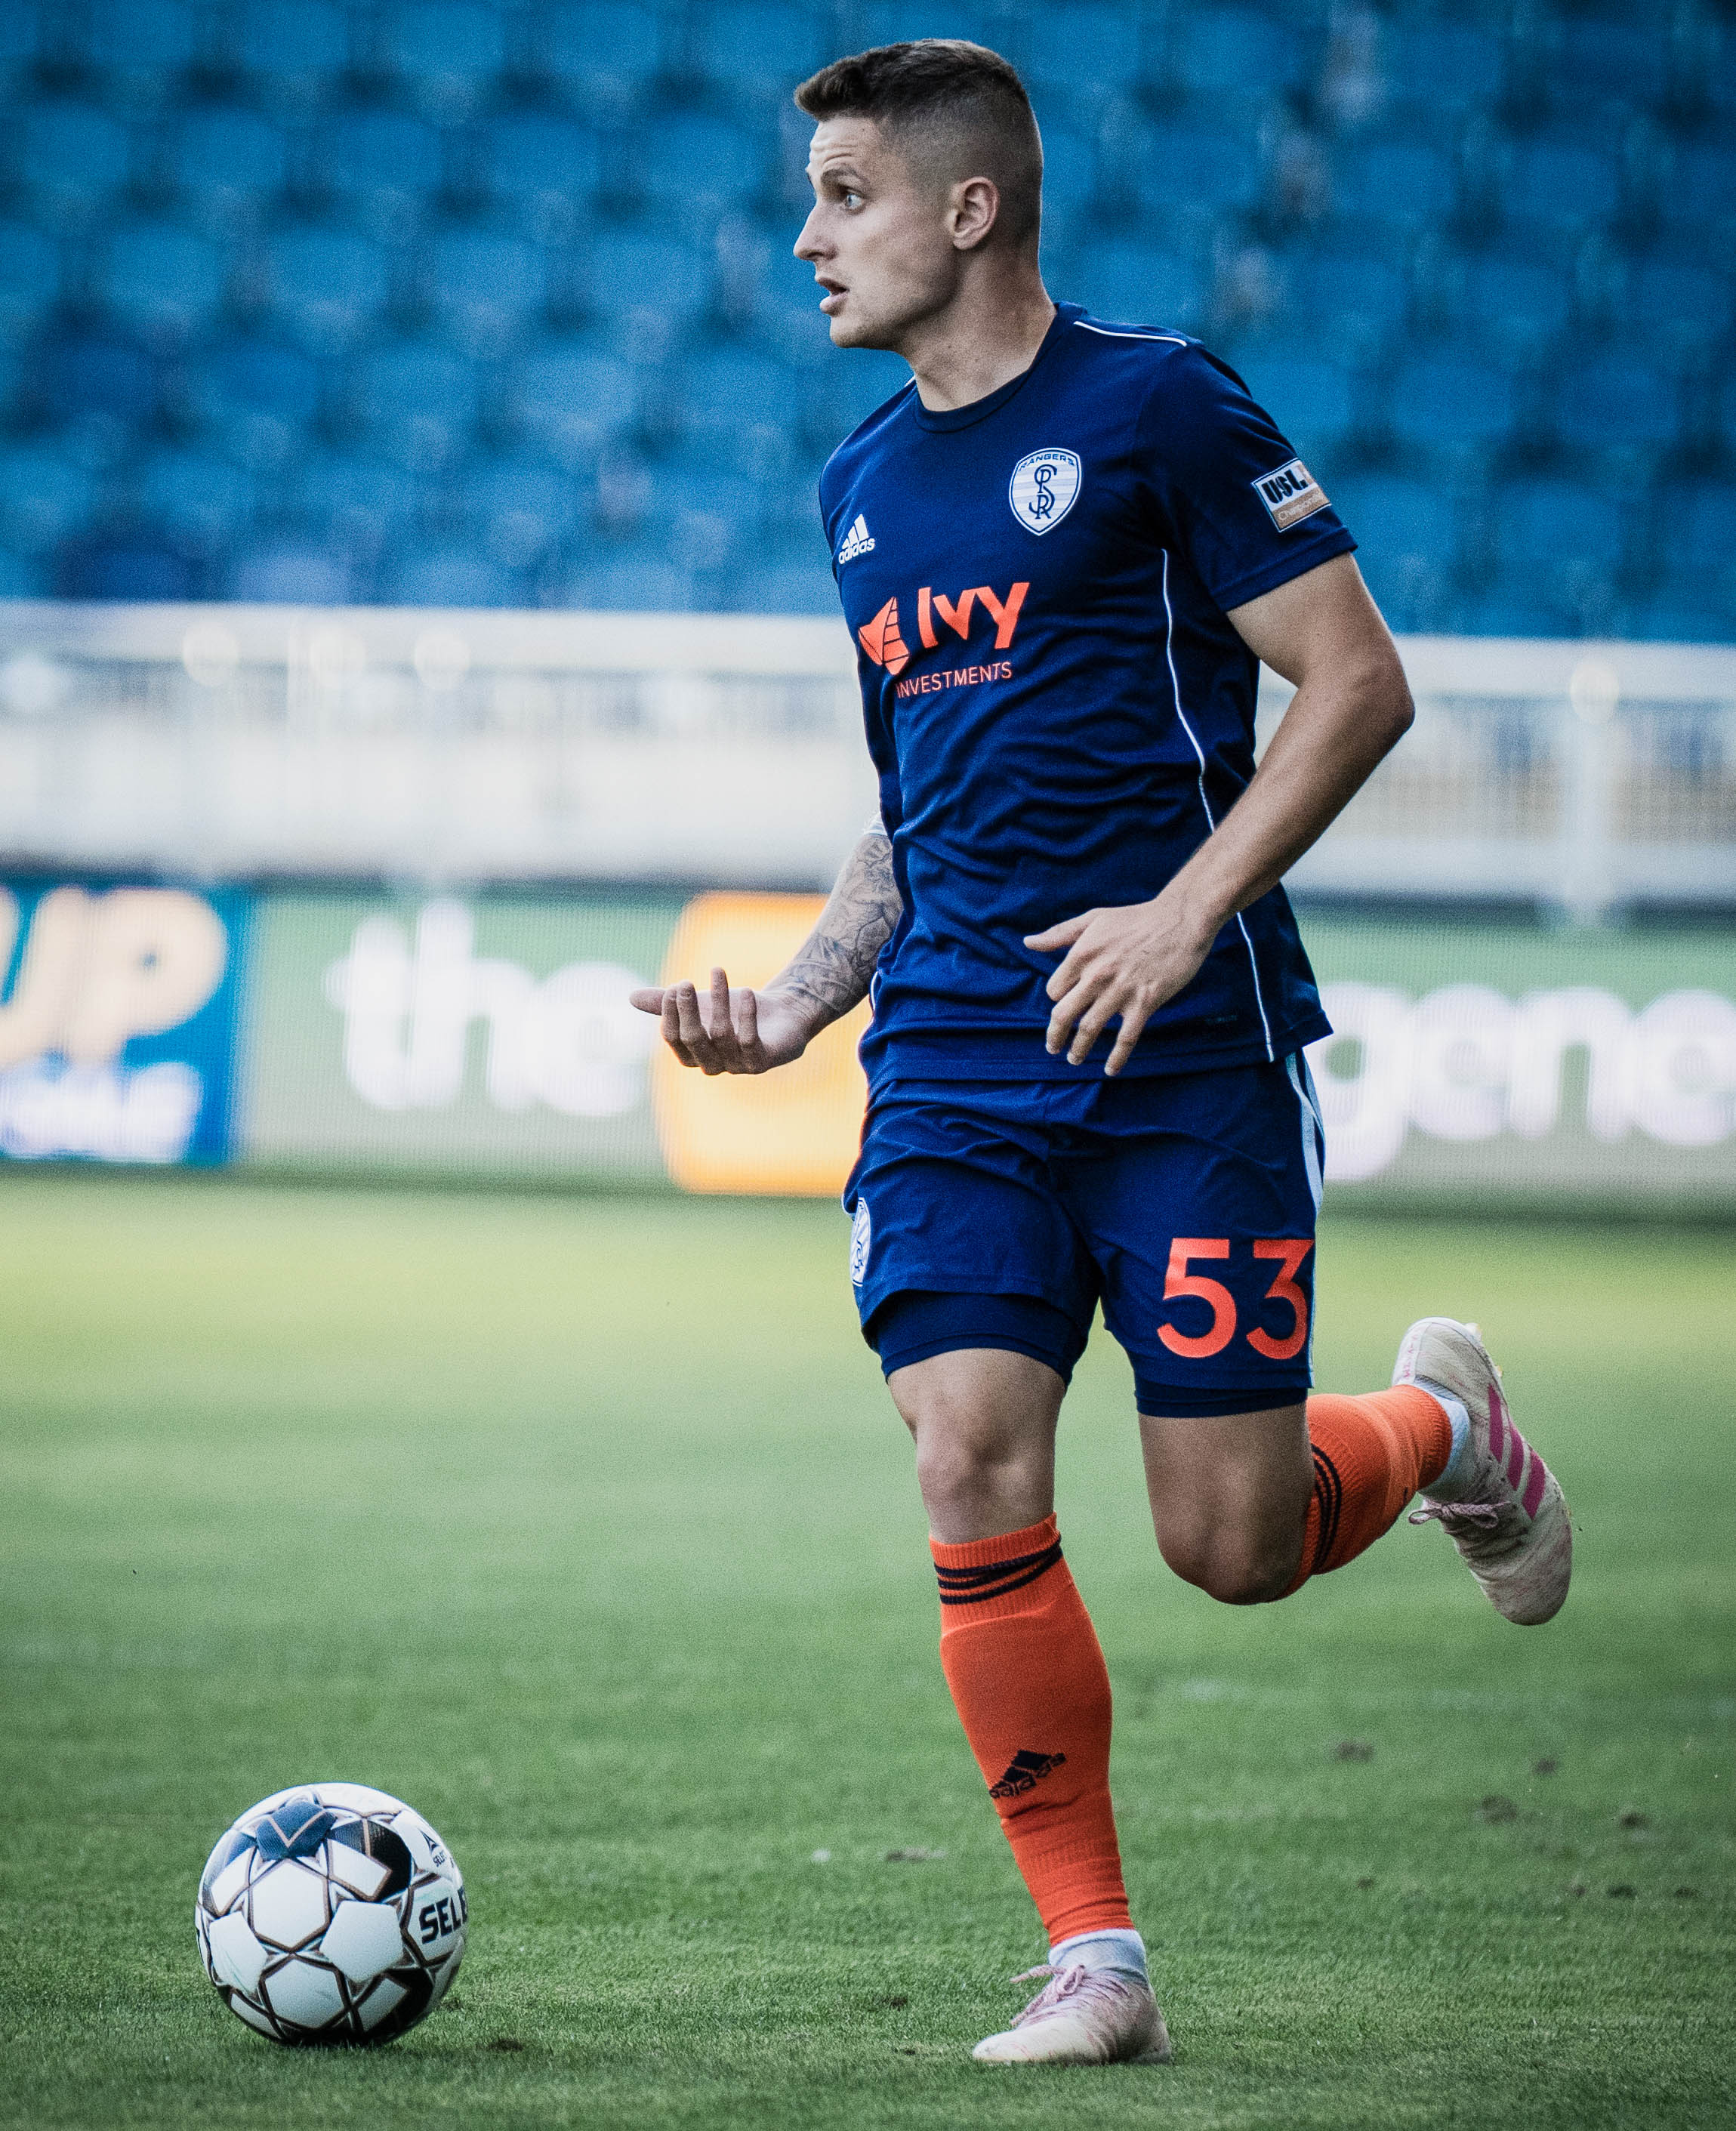 Killian Colombia dribbles the ball during the Swope Park Rangers vs. Charlotte Independence match on Saturday, June 8, 2019 at Children's Mercy Park, Kansas City, Kansas. The Rangers drew the Independence 0-0. | Photo by: Noah Riffe